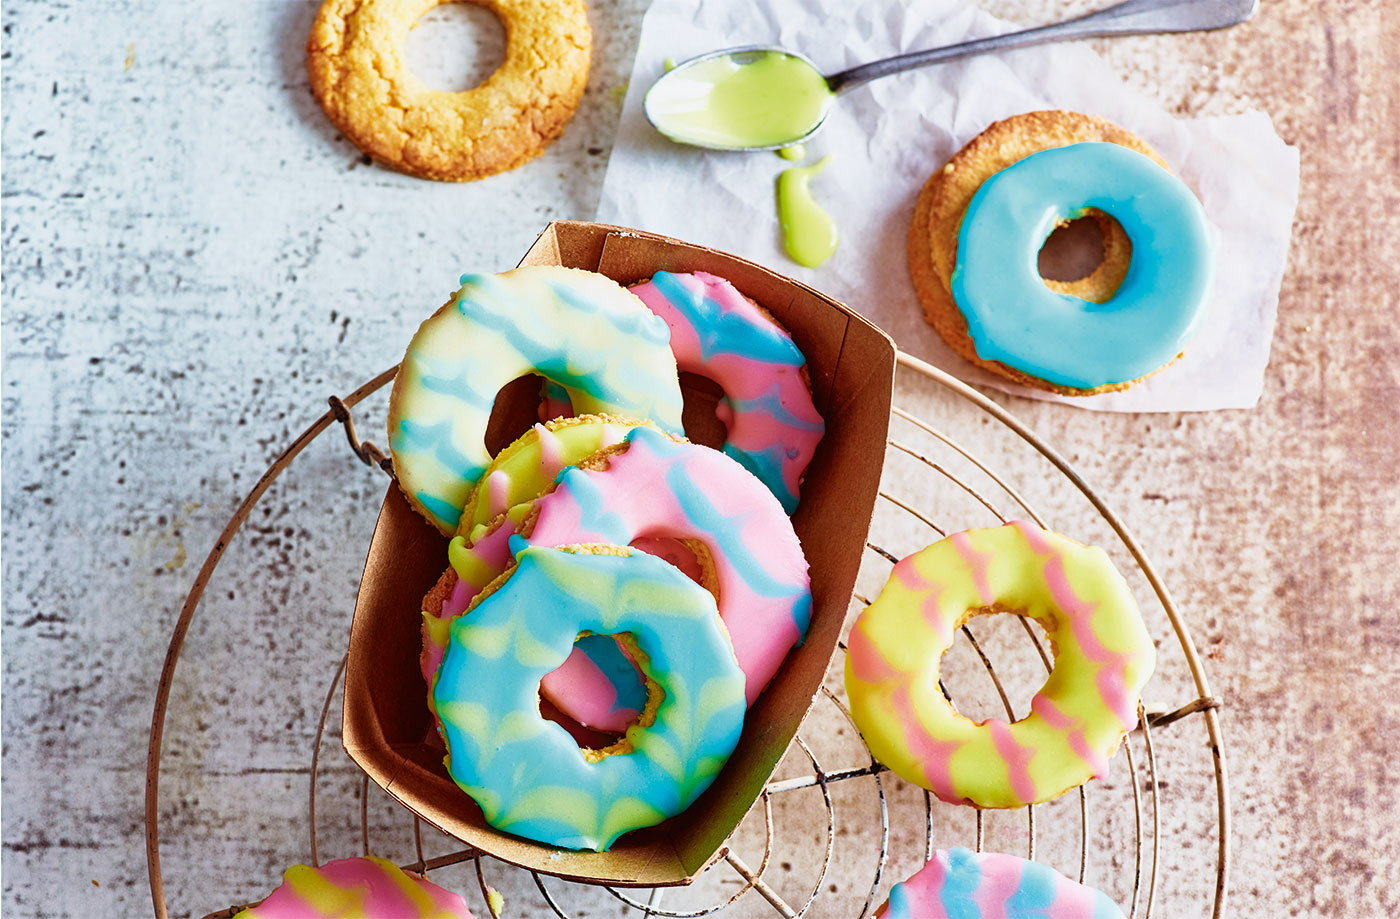 Coconut party rings recipe